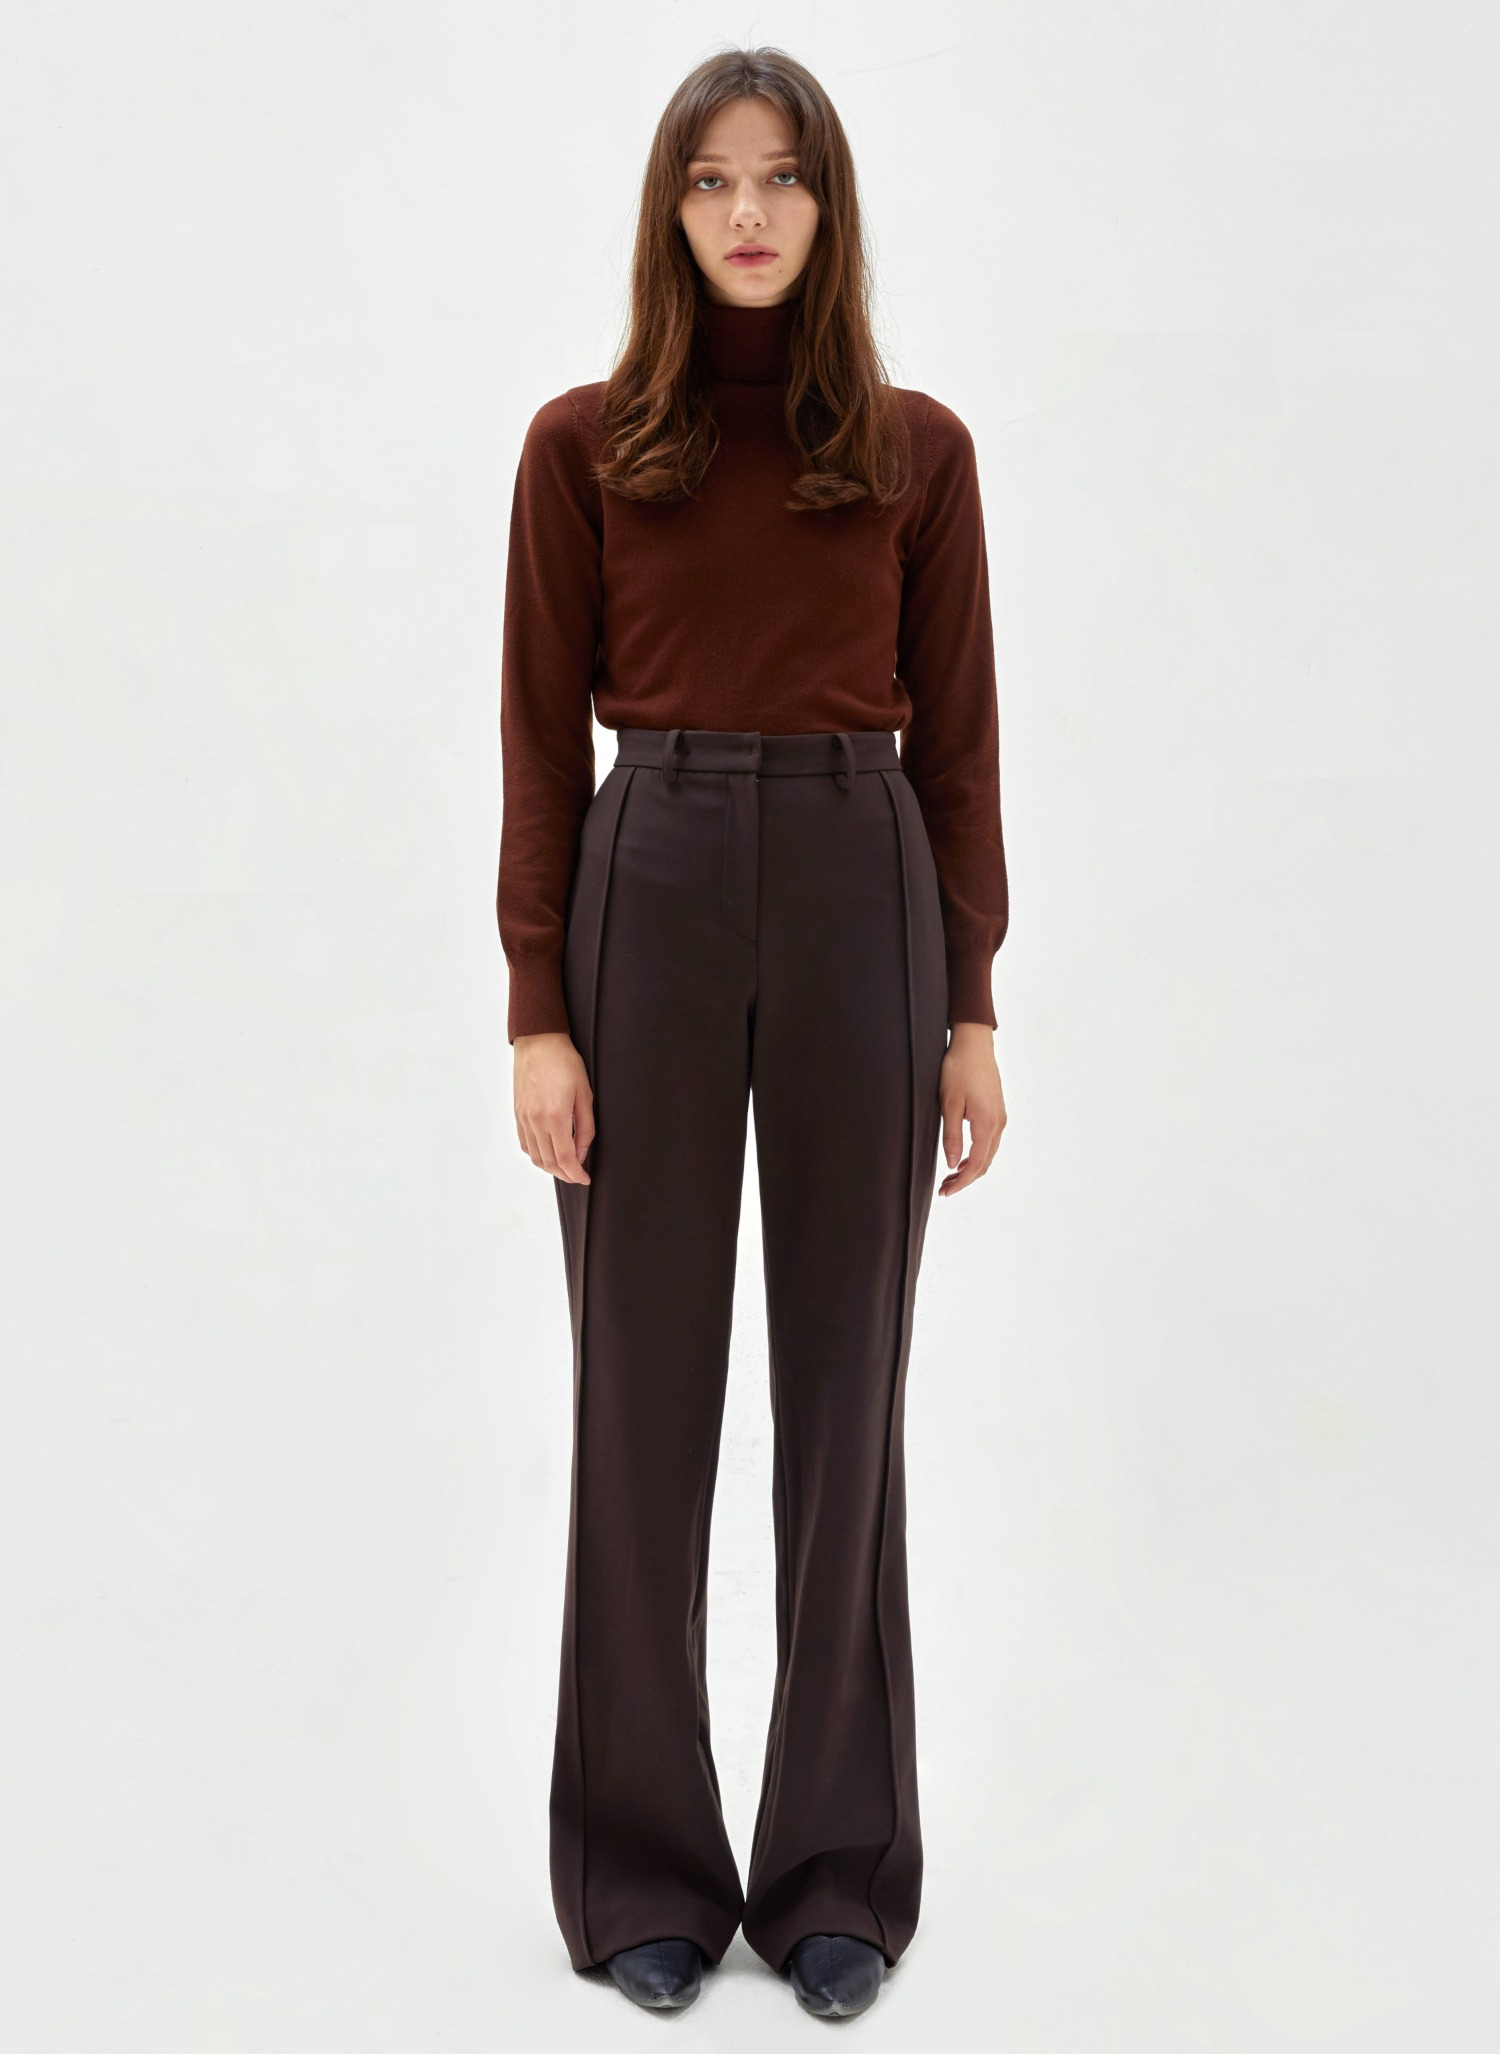 [2nd Re-Order 10/18] Lined boots cut trousers brown